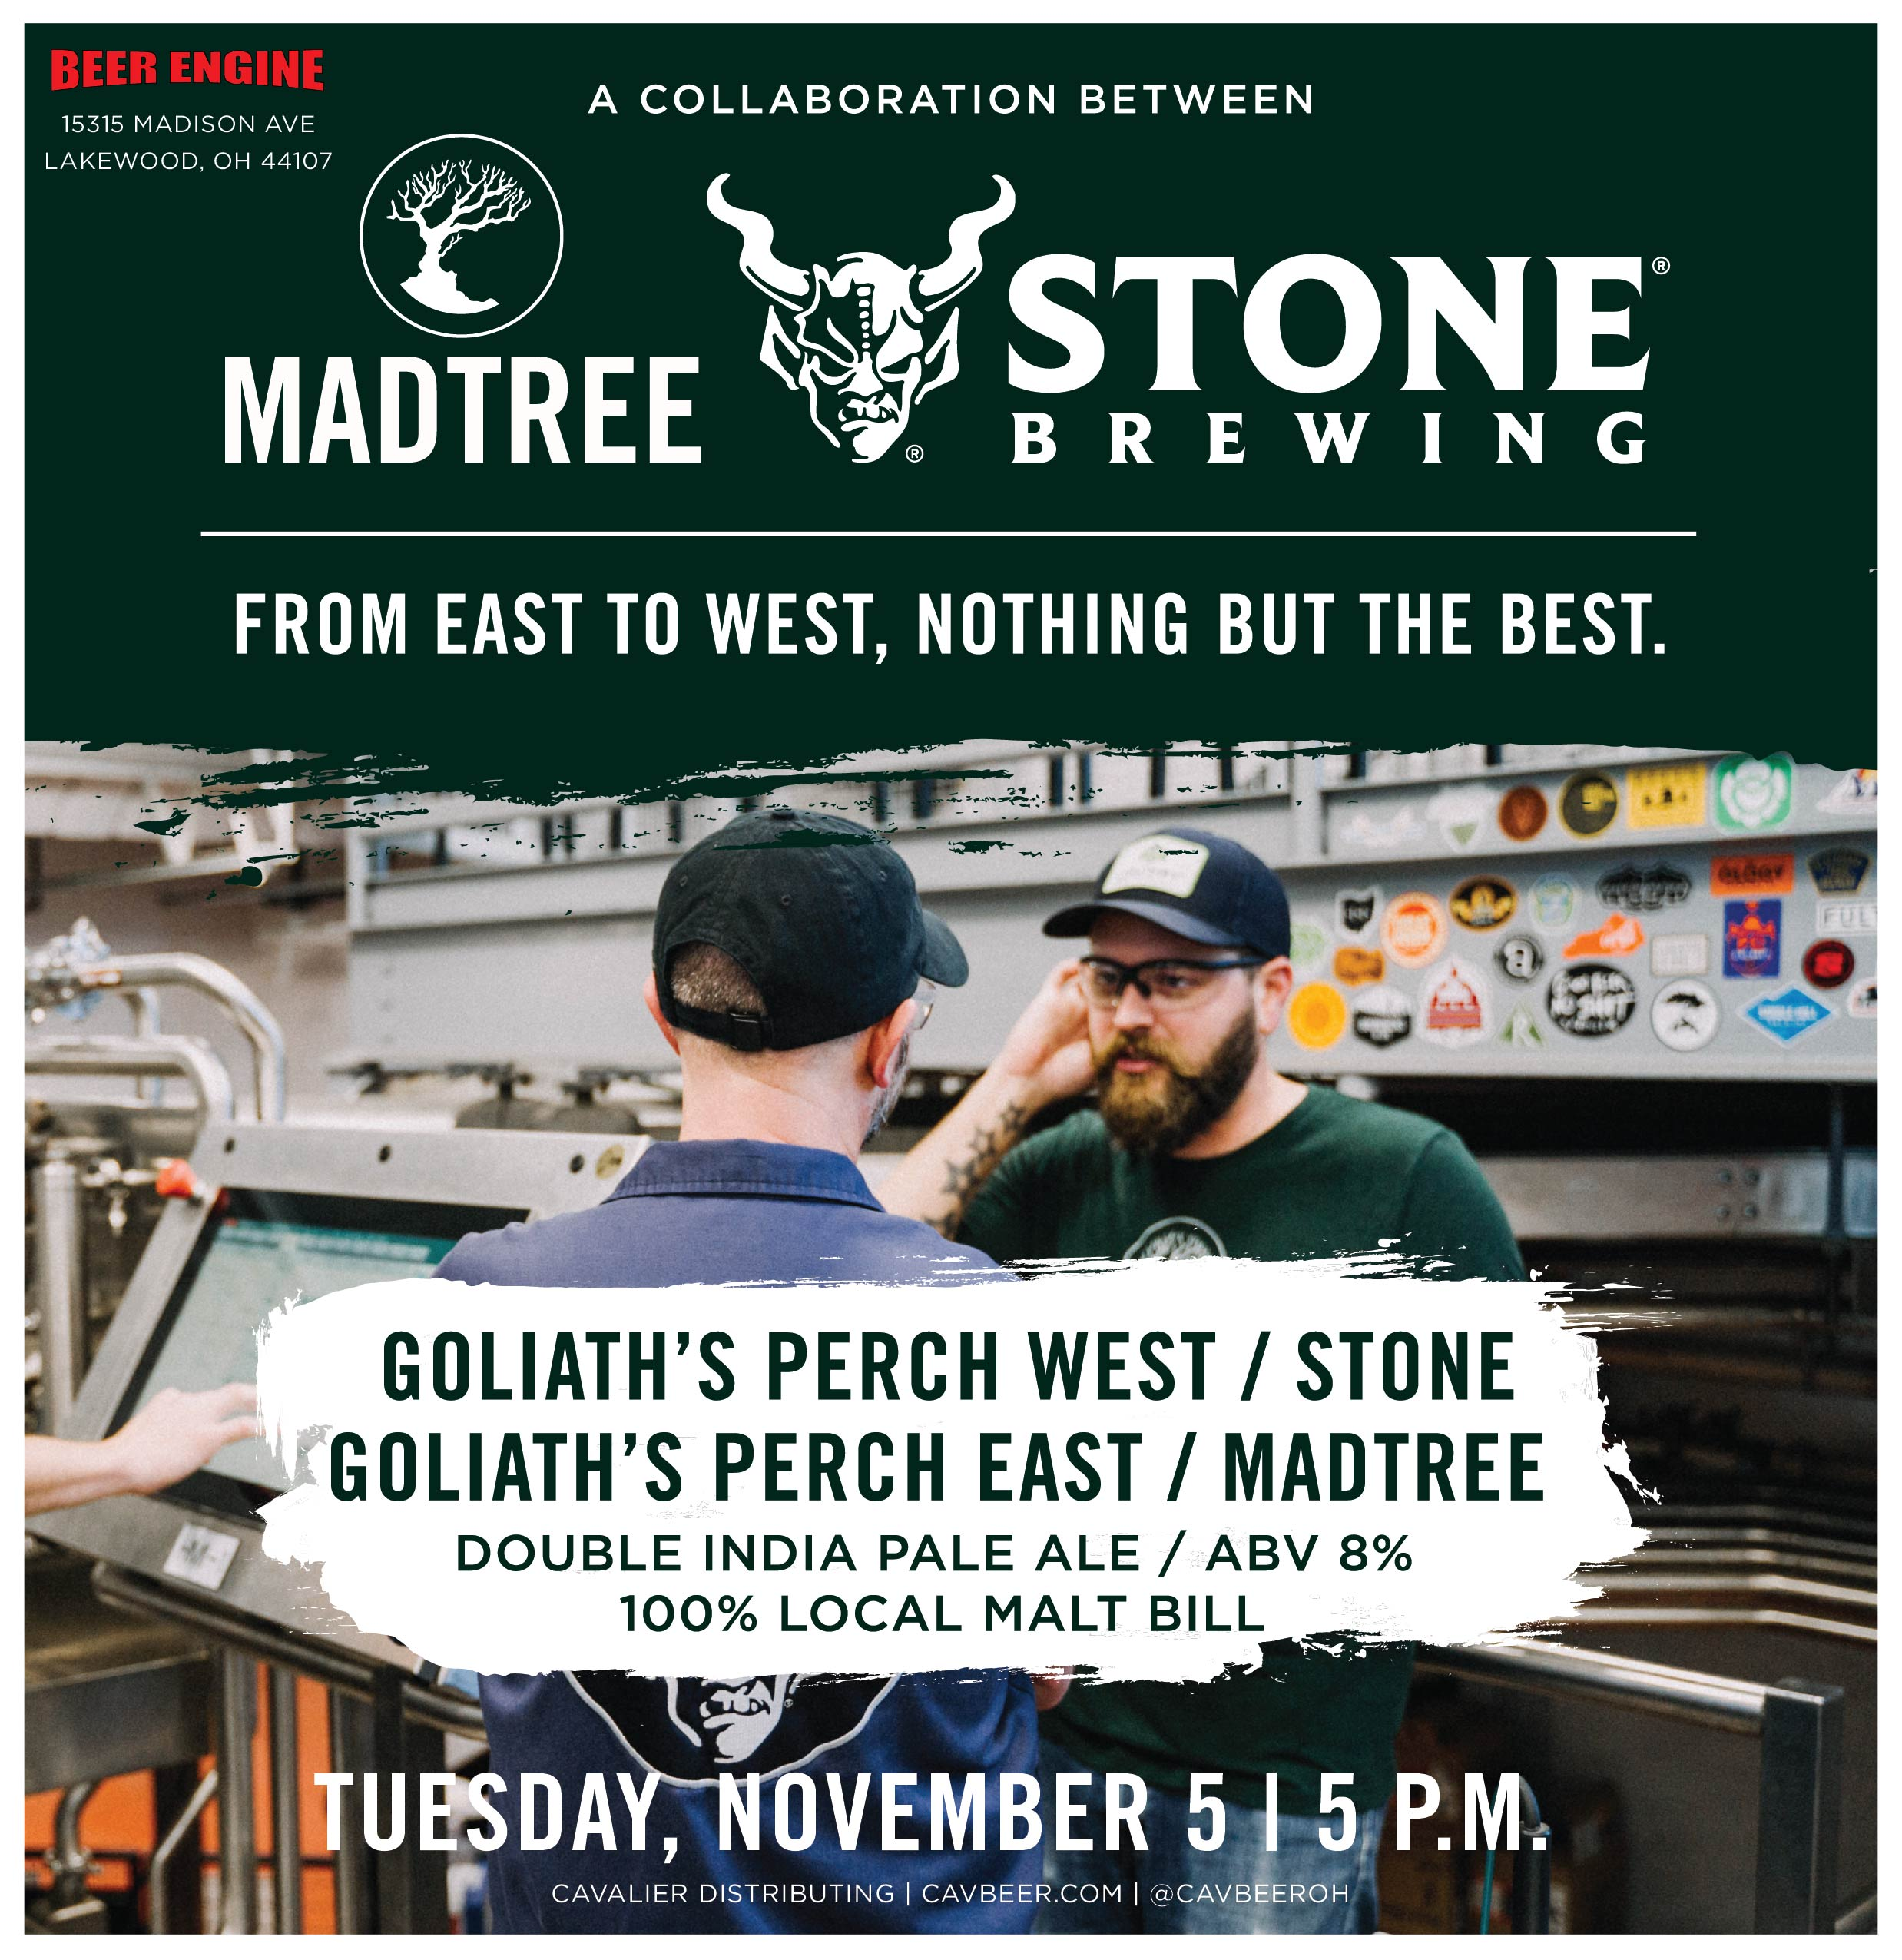 MadTree & Stone Brewing Collab @ Beer Engine